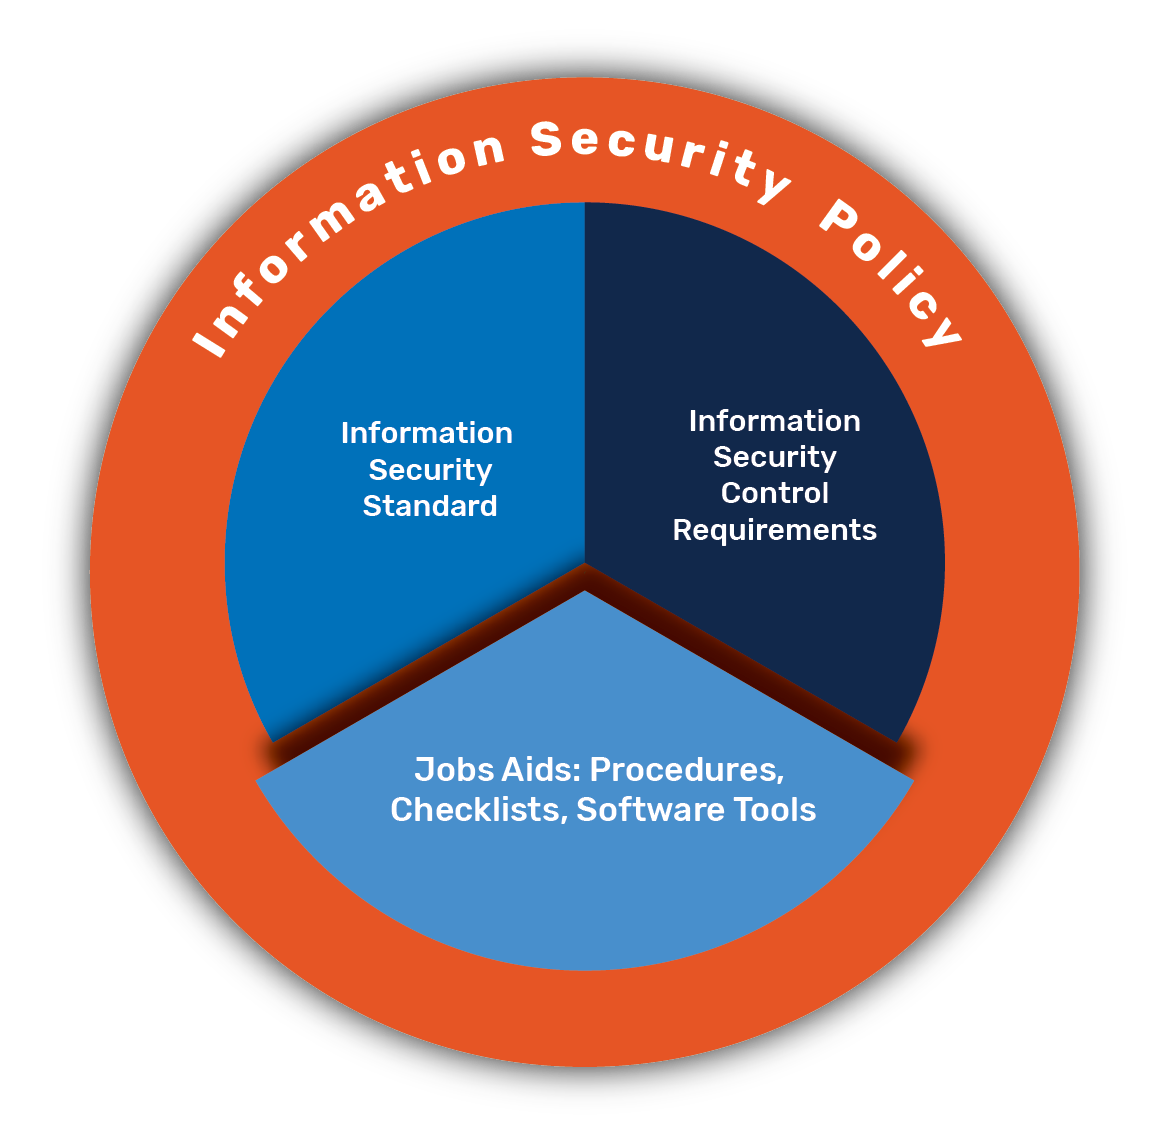 Security Program logo featuring the Data Policy and Information Security Policy circling the Information Security standards (highlighted), control requirements, and job aids.